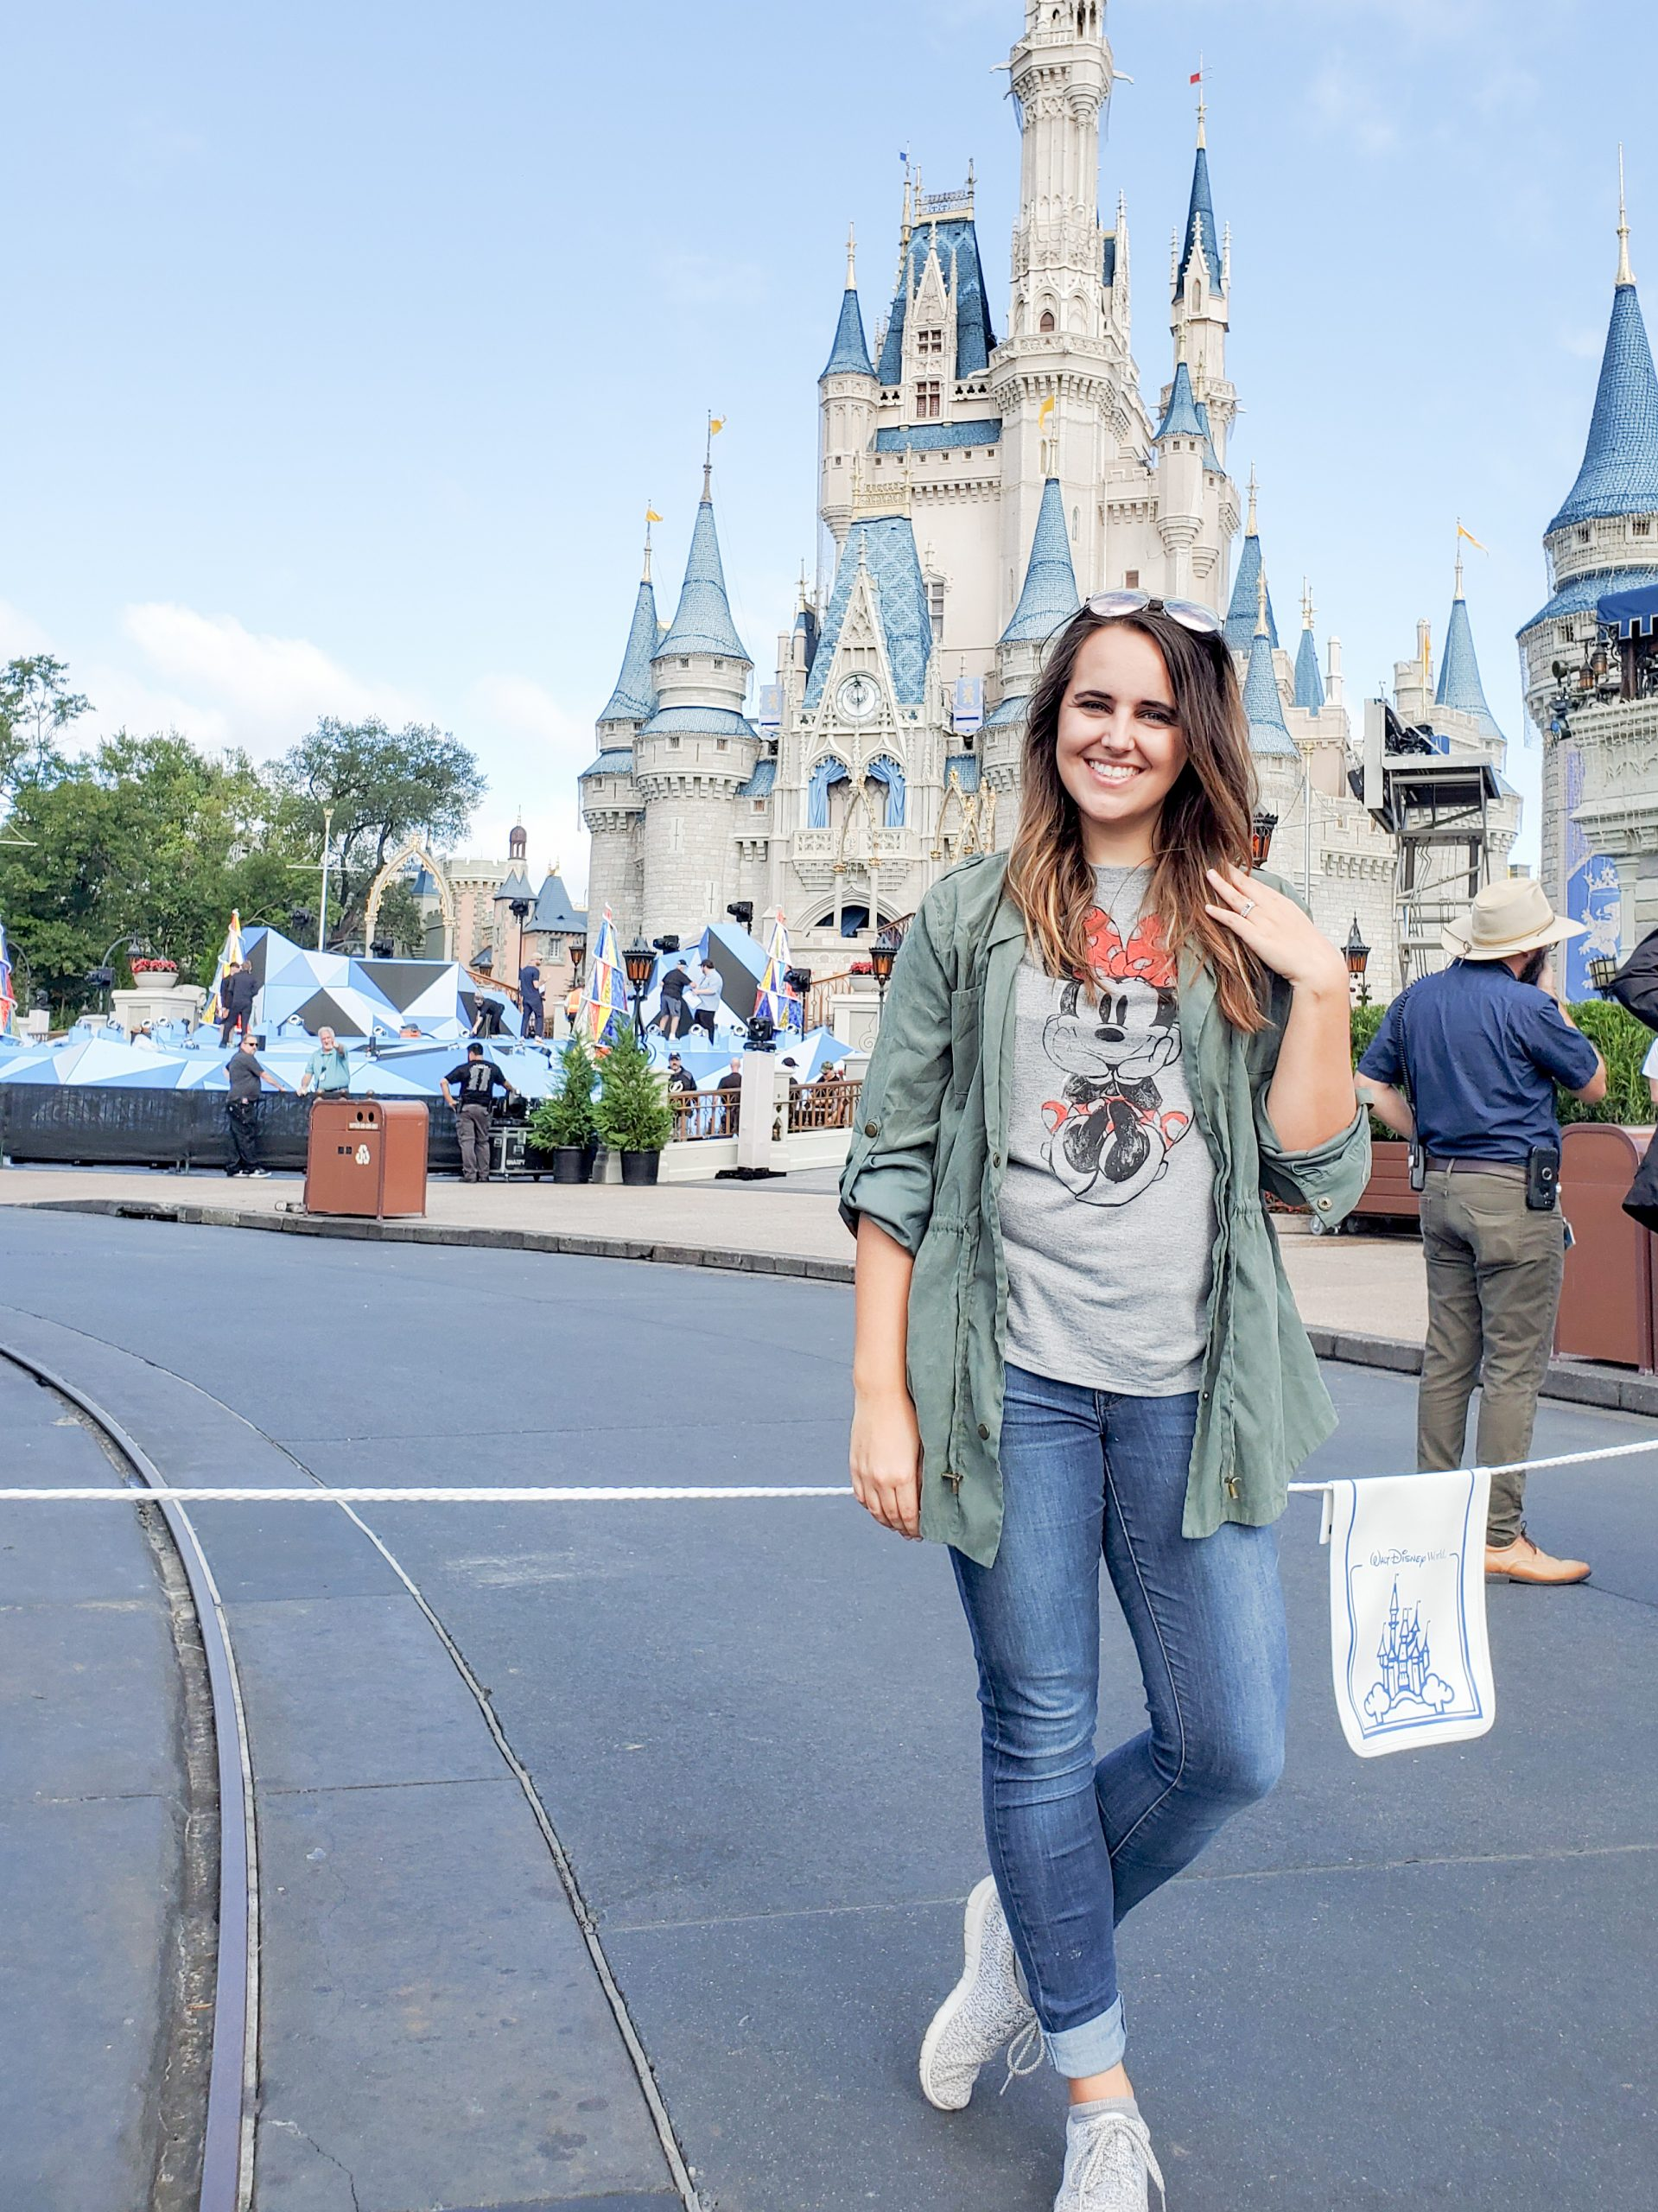 Takeaways from Magic Kingdom – The Good and The Bad